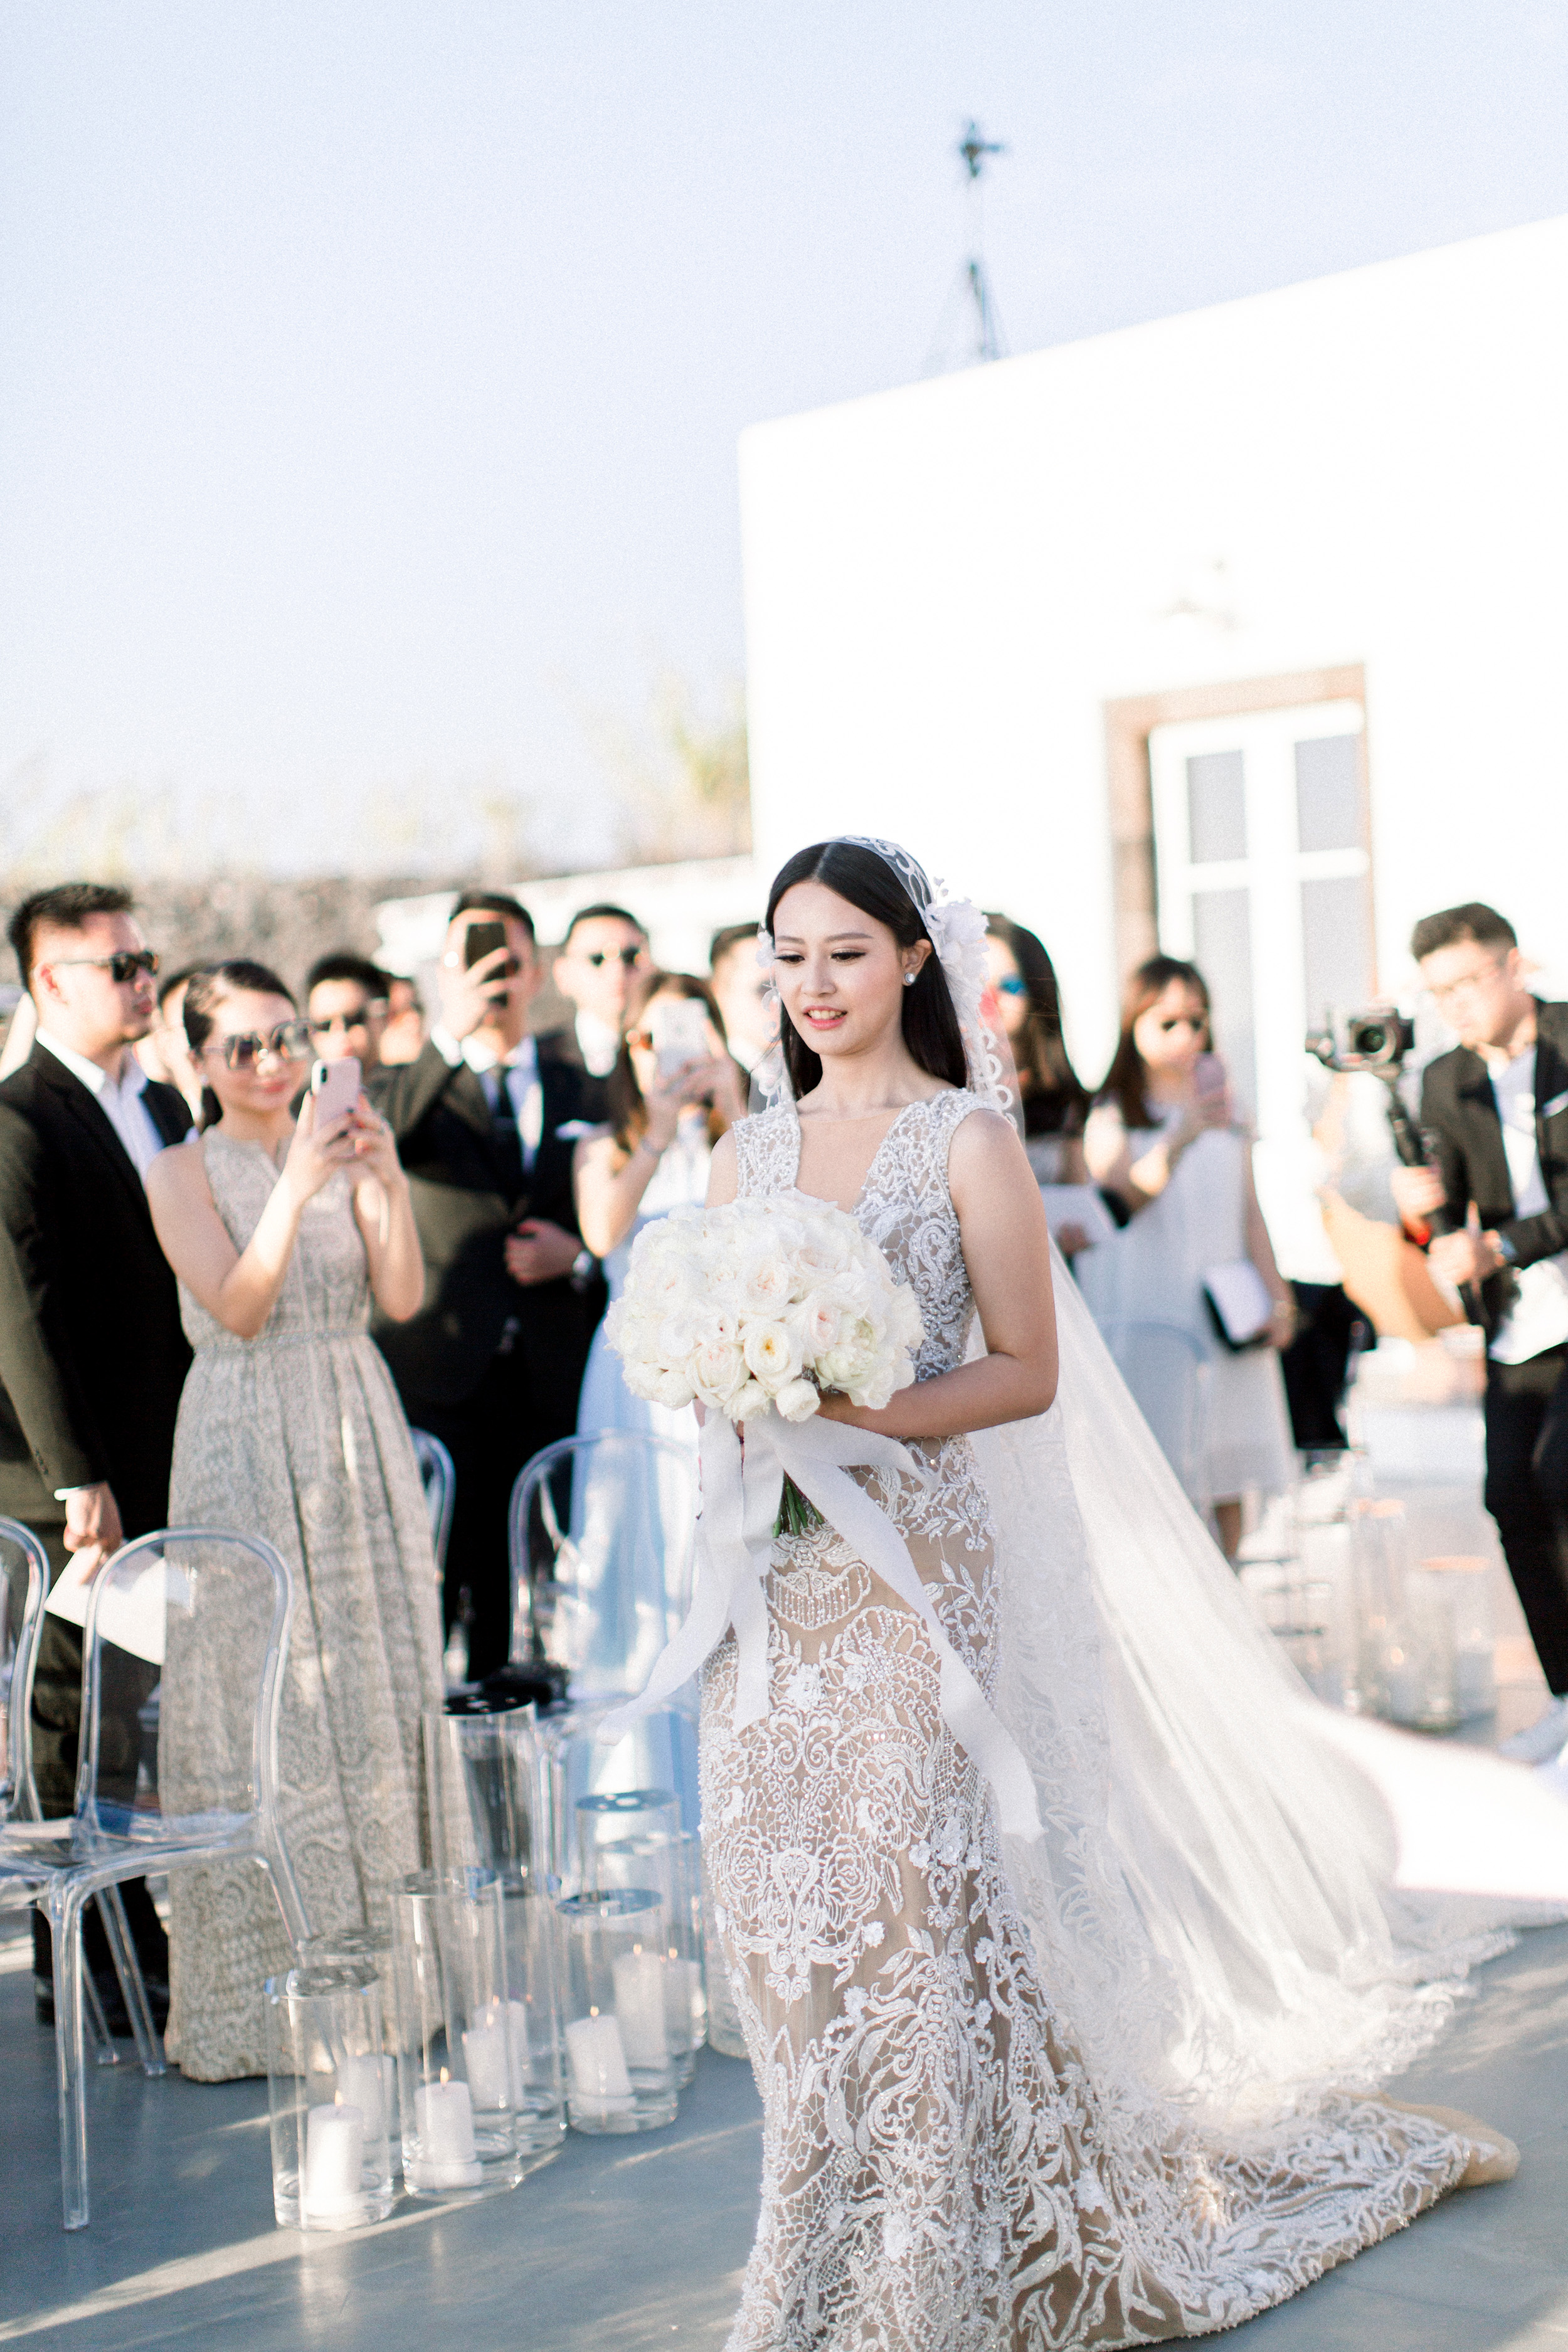 angie prayogo greece wedding processional bride